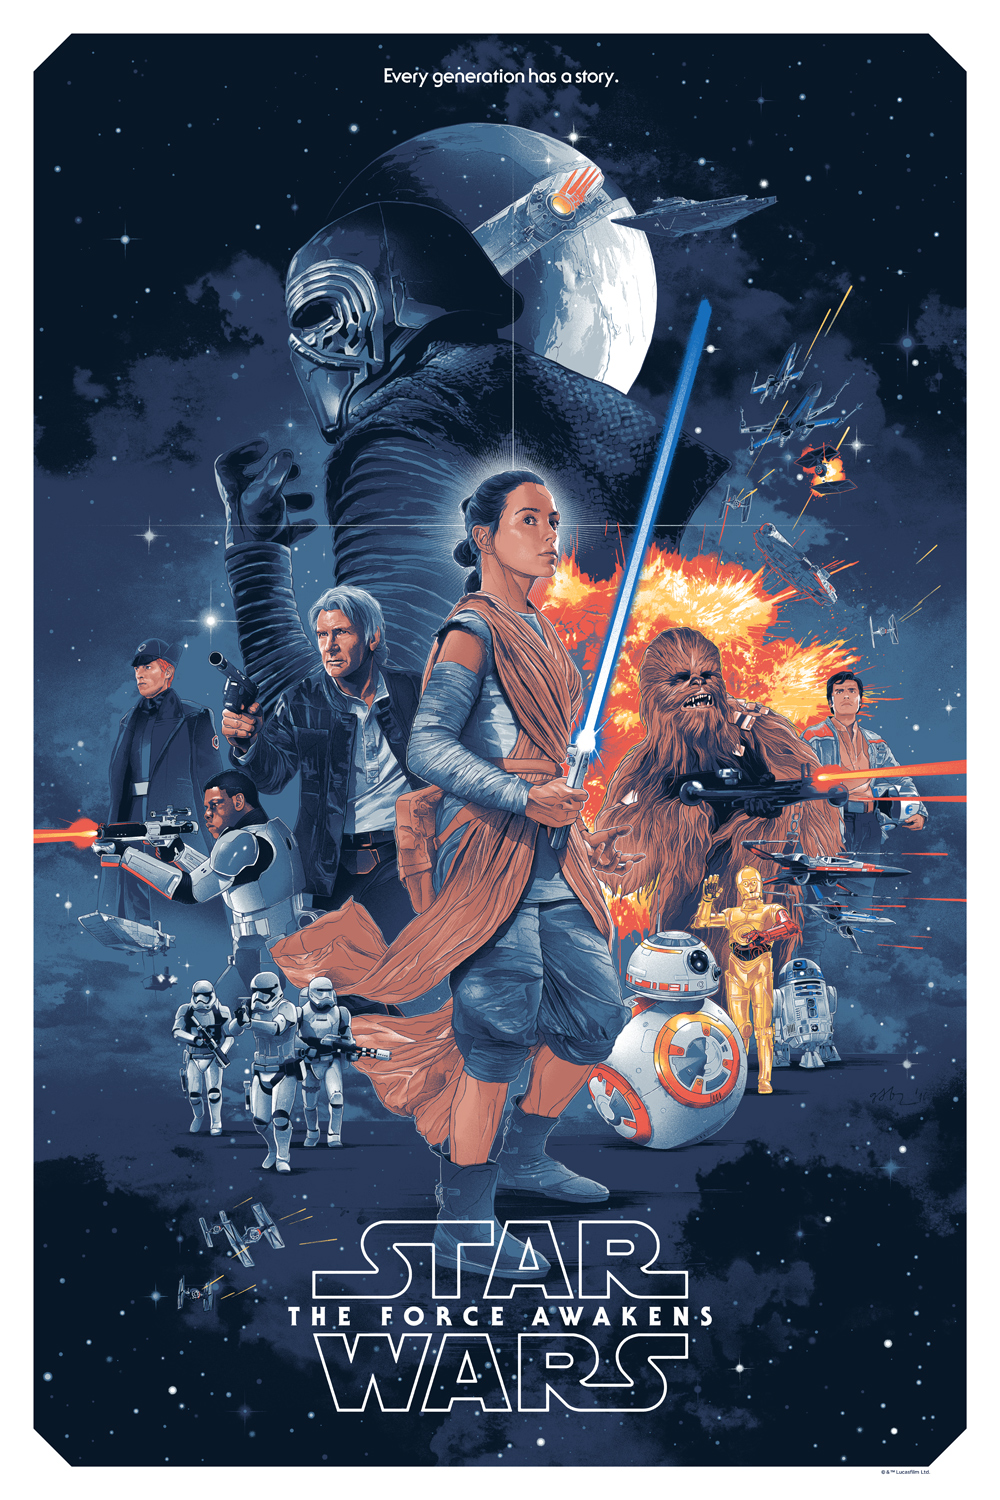 Delightful Star Wars   The Force Awakens   Poster